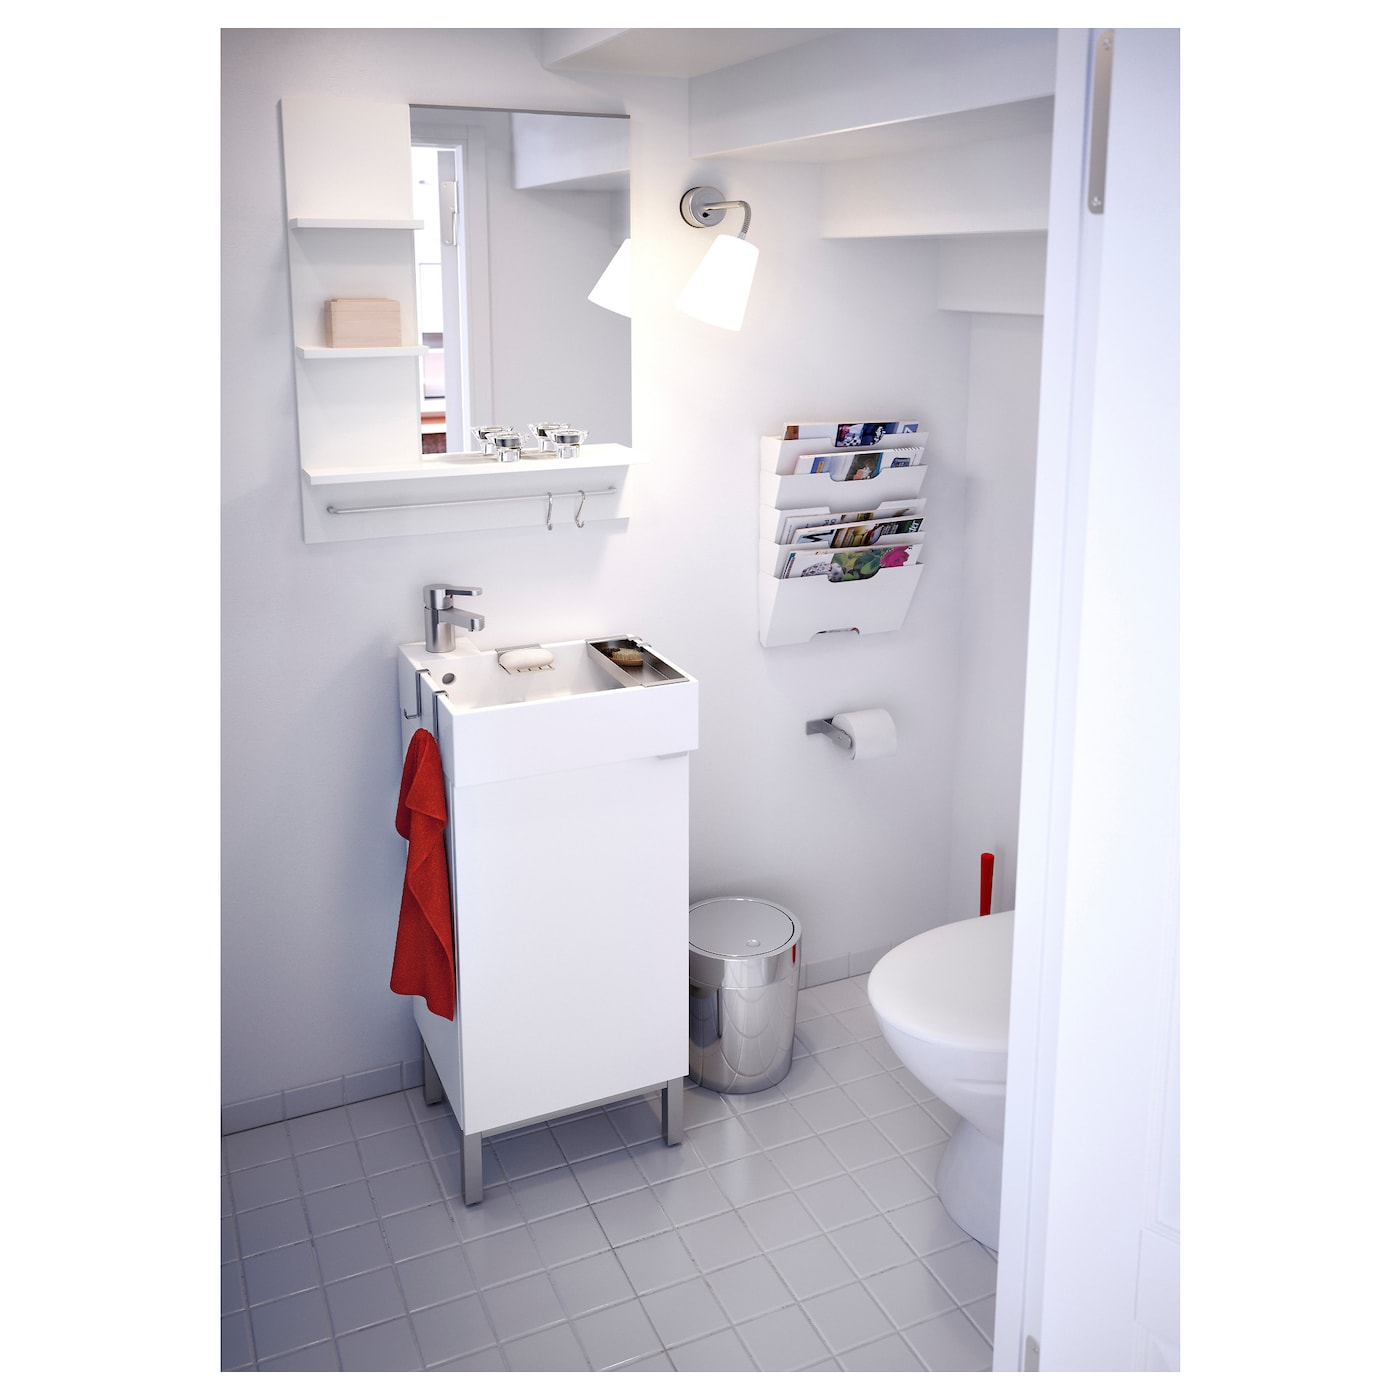 Lill ngen wash basin cabinet with 1 door white 40x38x64 cm for Bathroom cabinets 40cm wide